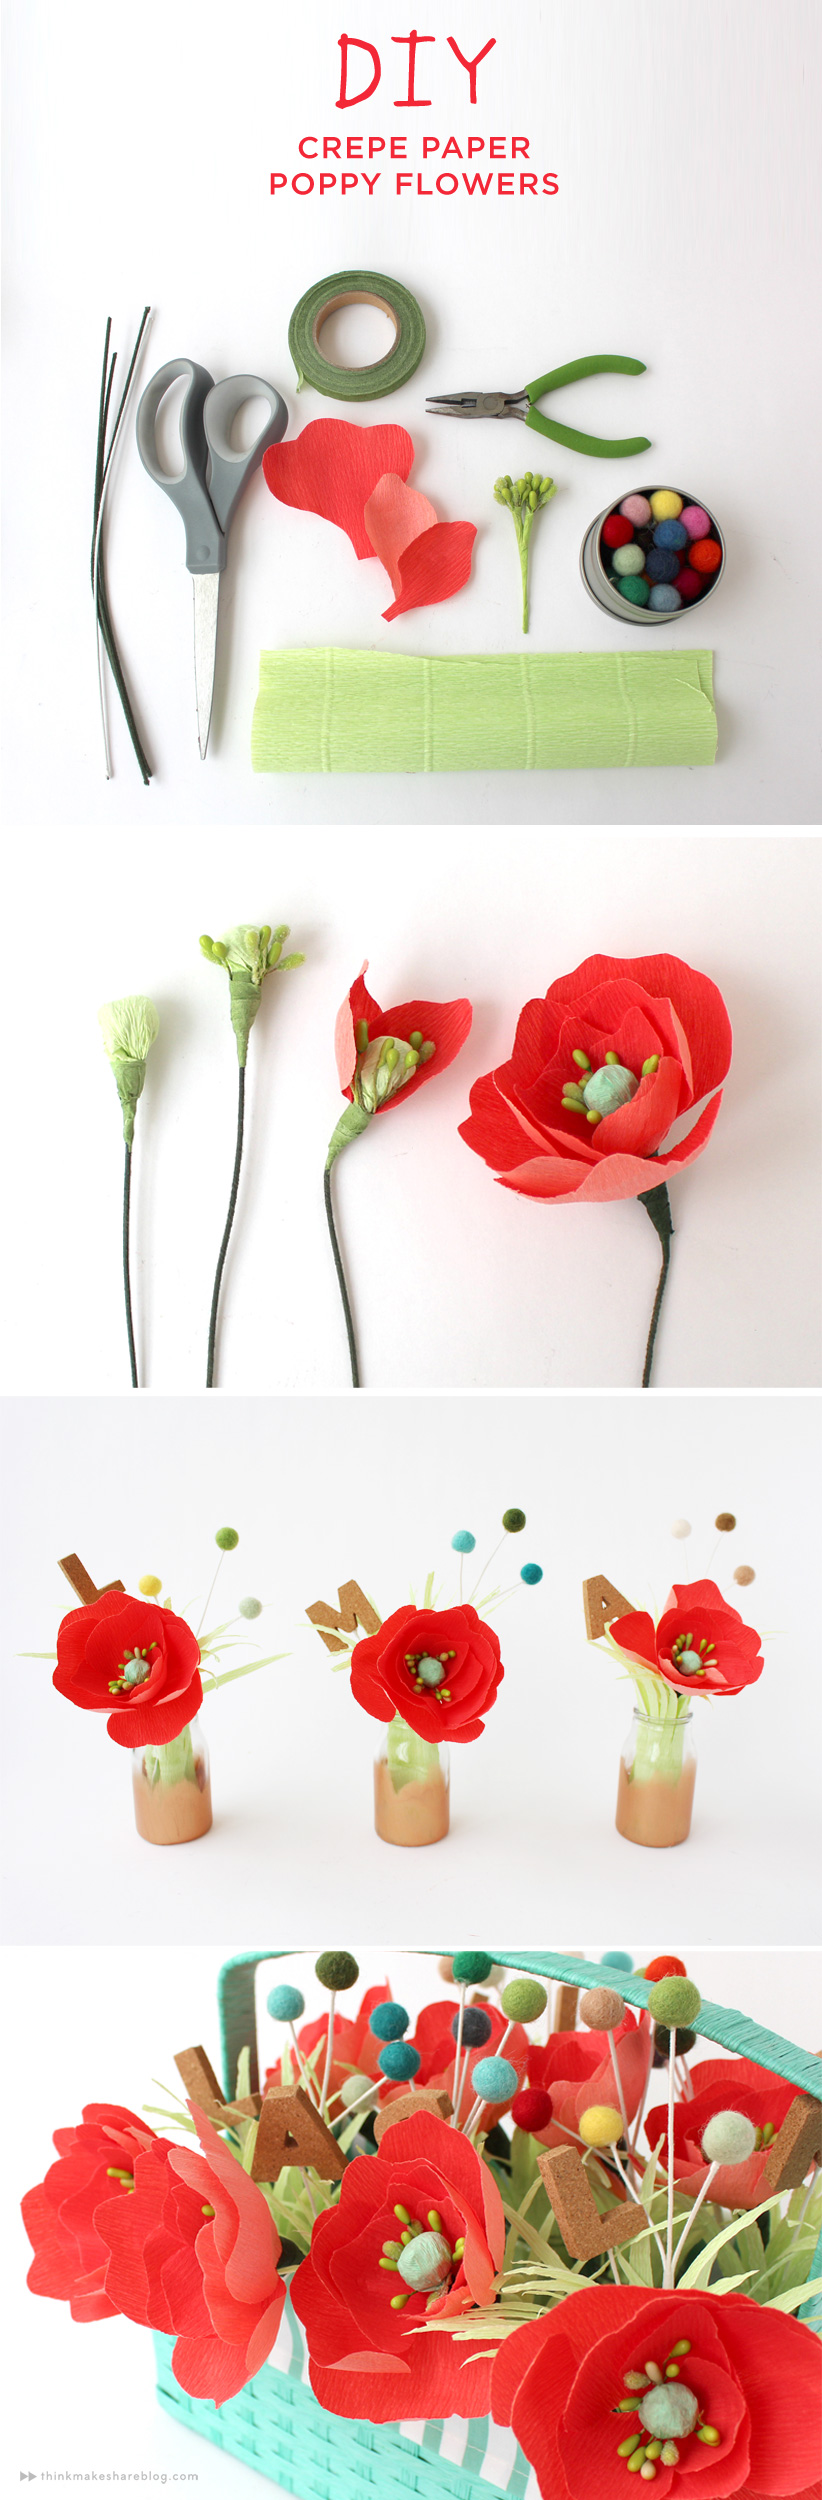 DIY-CREPE-PAPER-POPPY-FLOWER-FROM-HALLMARK